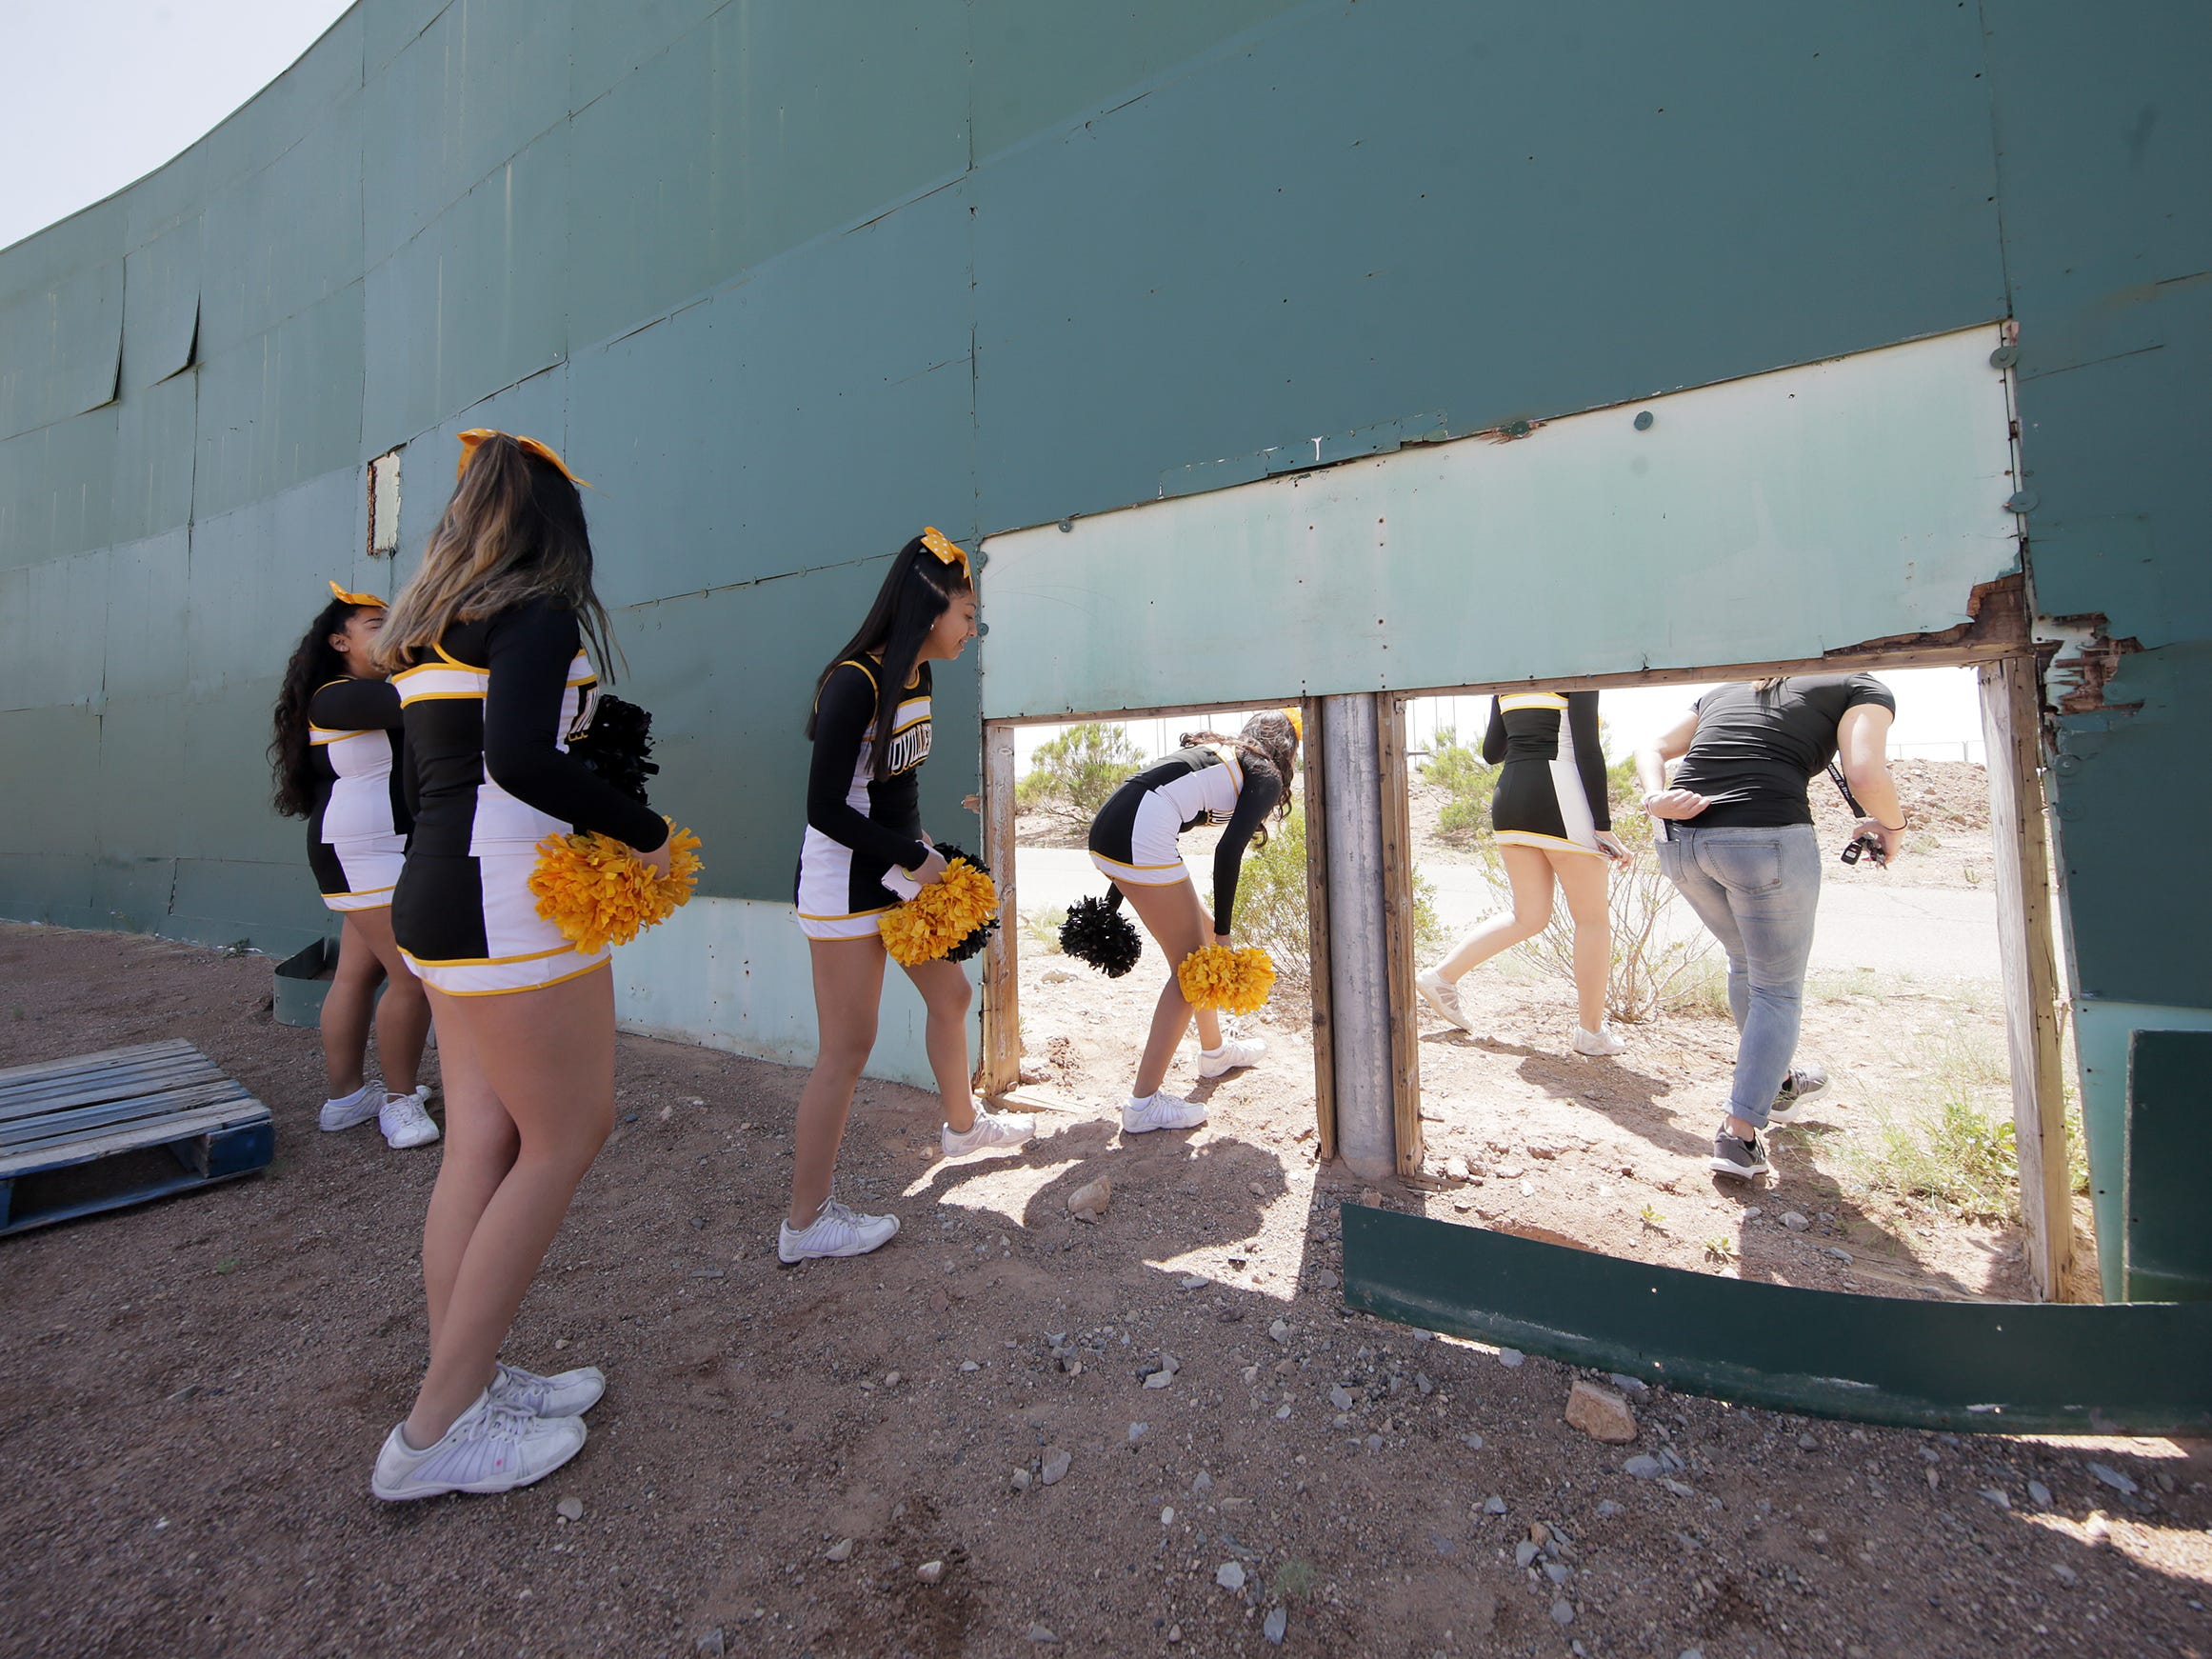 Parkland Middle School Cheerleaders duck through a hole in right-center field at Cohen Stadium during Cohen Selfie Day Saturday. Their coach, Bailey Sarver, once worked for the Diablos. El Pasoans got to say goodbye to Cohen Stadium before it's demolished to make way for the Cohen Entertainment District. The site will be converted into a multi-use facility with a large water park, restaurants and an urban plaza. The stadium was closed to the public during Selfie Day at Cohen Stadium on Saturday, May 11, 2019, but several El Pasoans popped through a hole in right-center field for one last look at the deteriorating stadium.